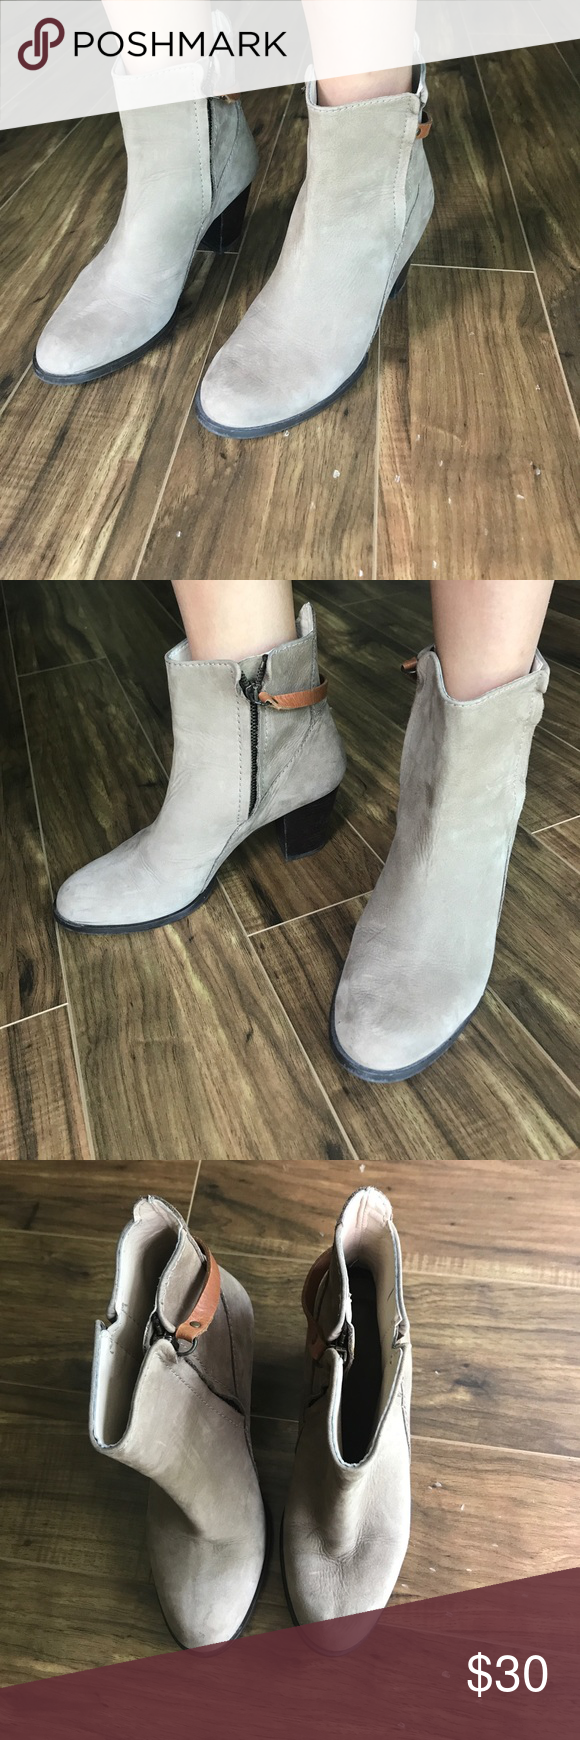 Zara Ankle Boots Cruise S/S 12 Signs of wear on the insole and exterior Zara Shoes Ankle Boots & Booties